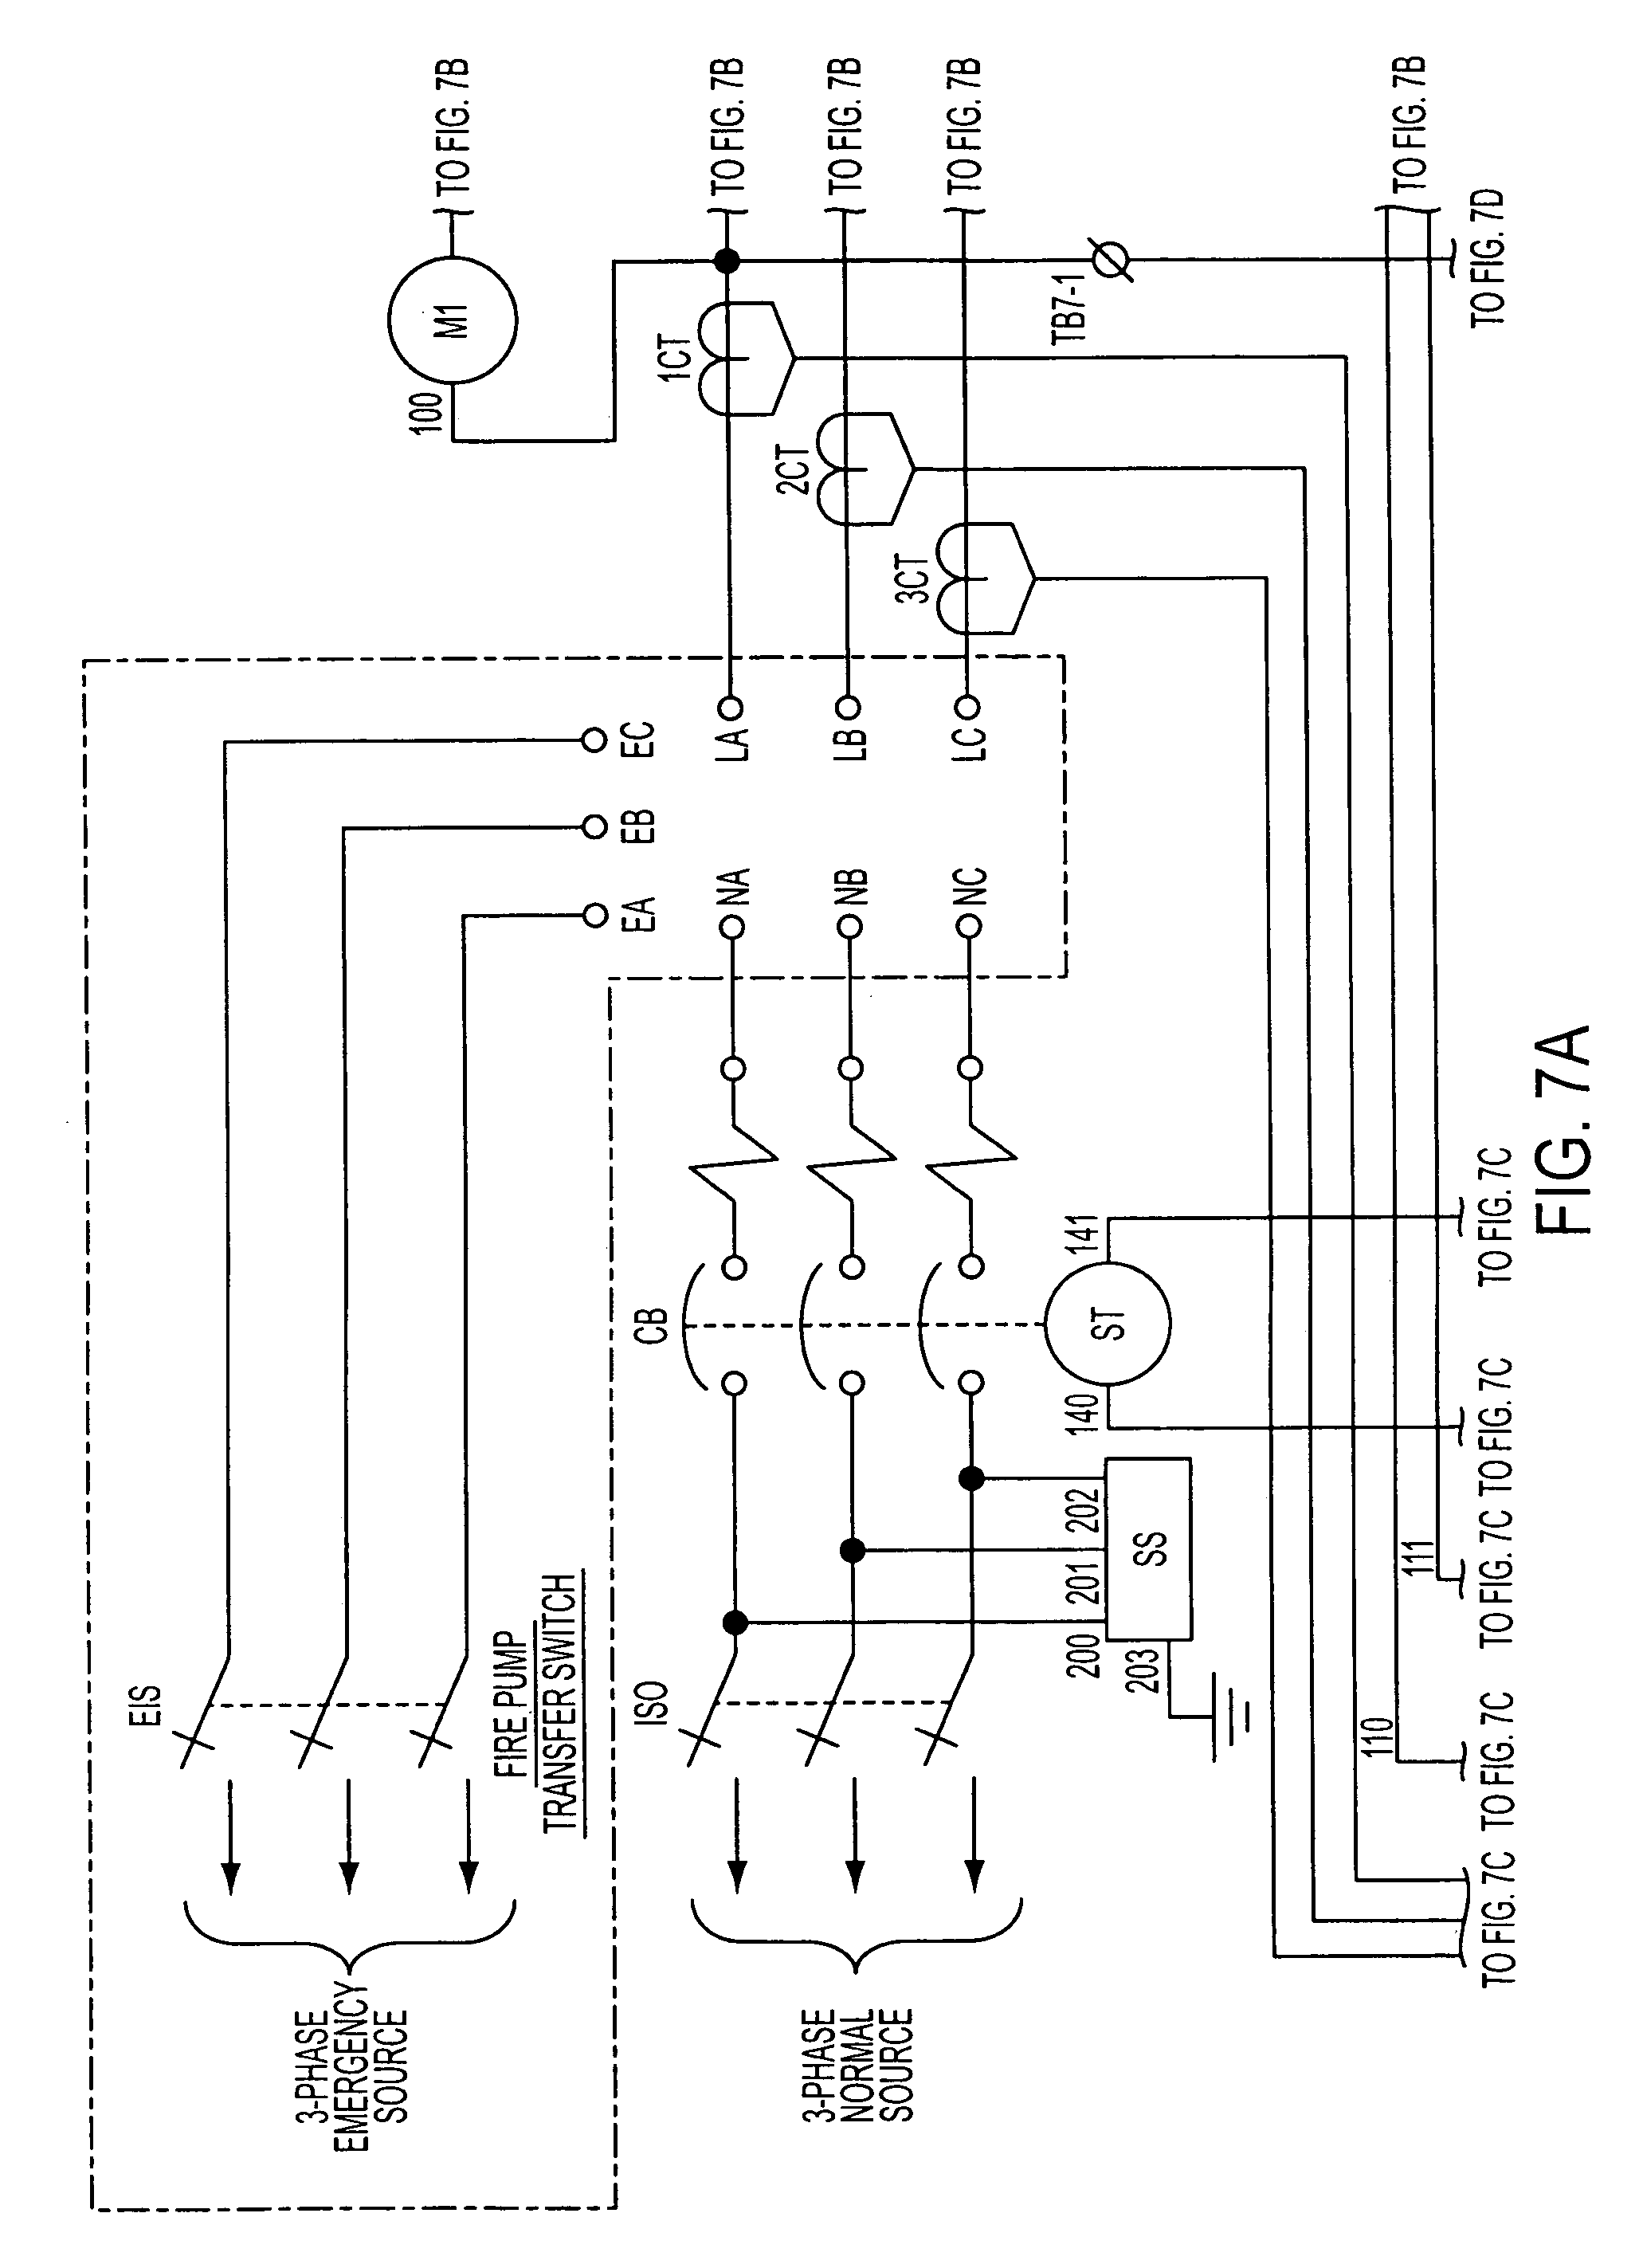 small resolution of  diagram inverter charger wiring us20050183868a1 20050825 d00013 resize 665 2c920 ssl 1 goulds pumps control panel wiring